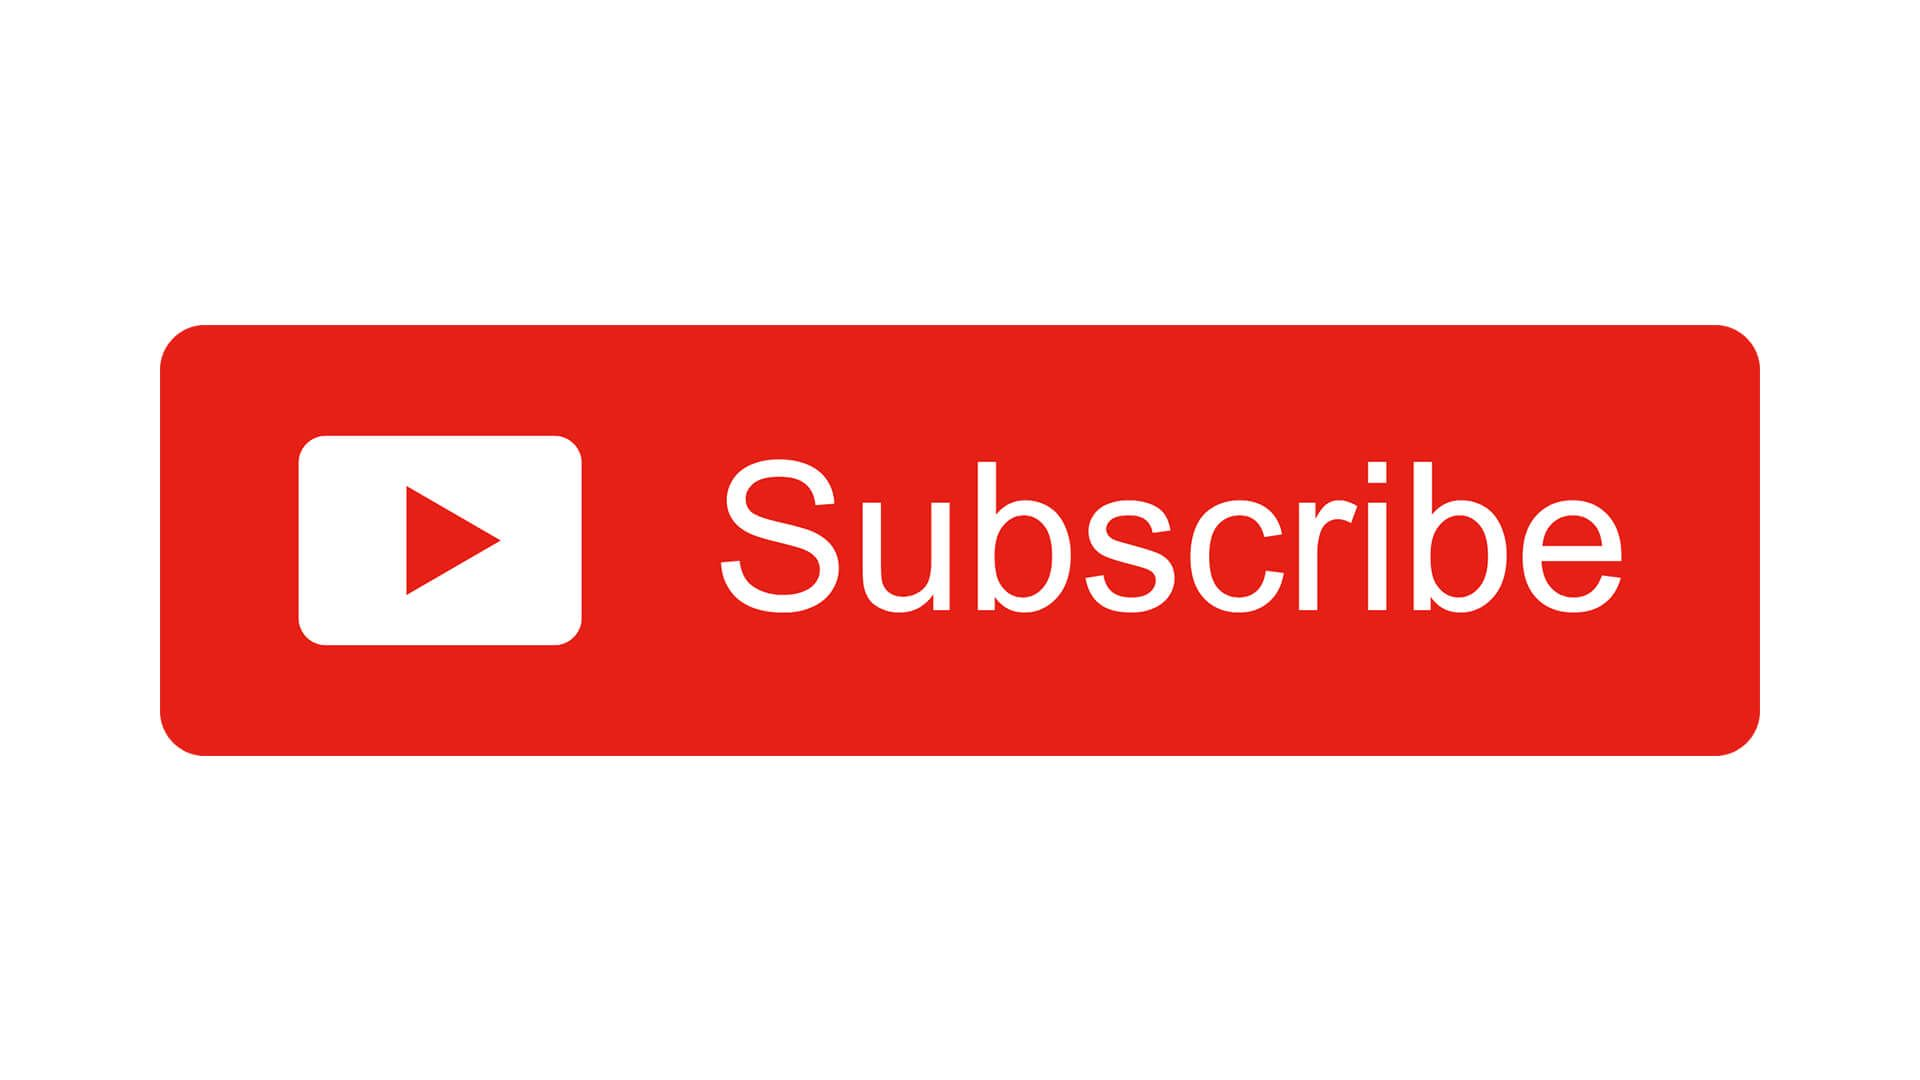 Free-YouTube-Subscribe-Button-Download-Design-Inspiration-By